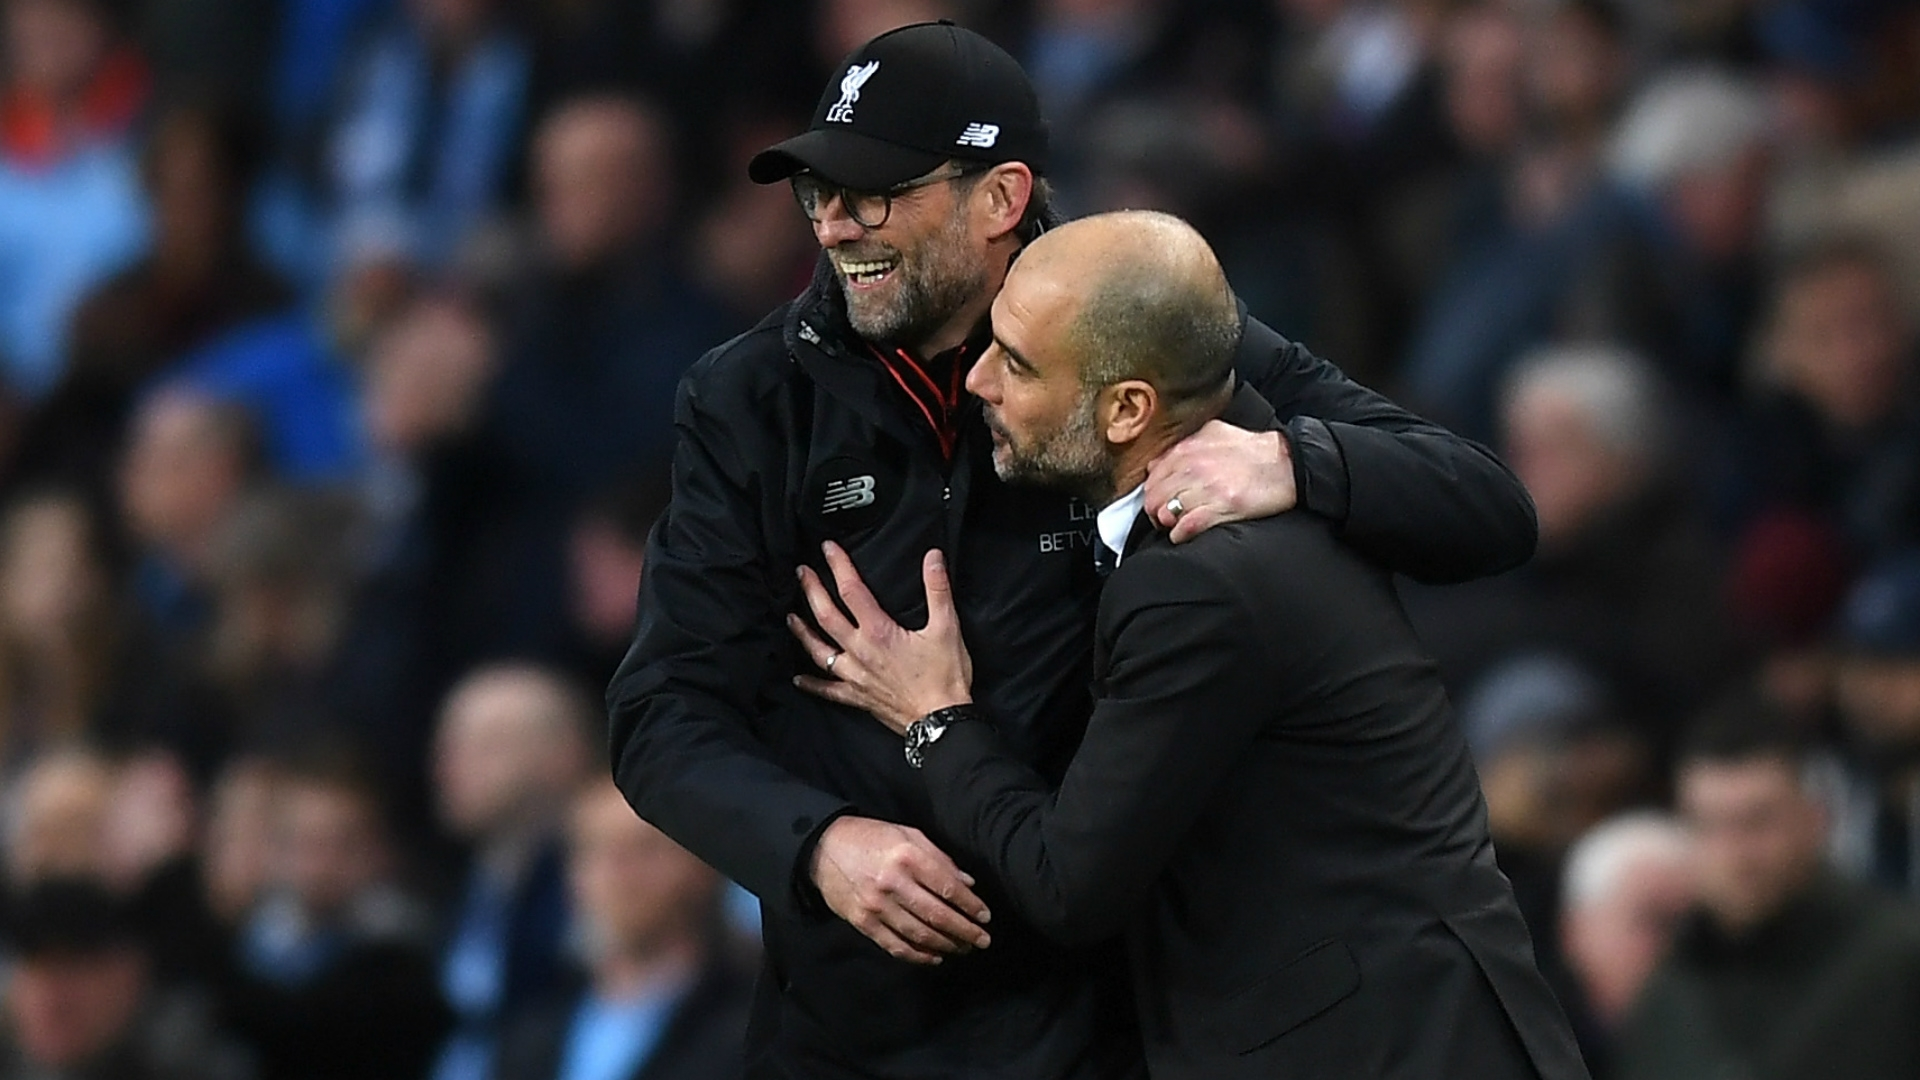 Jurgen Klopp and Pep Guardiola to meet tonight in UCL Game